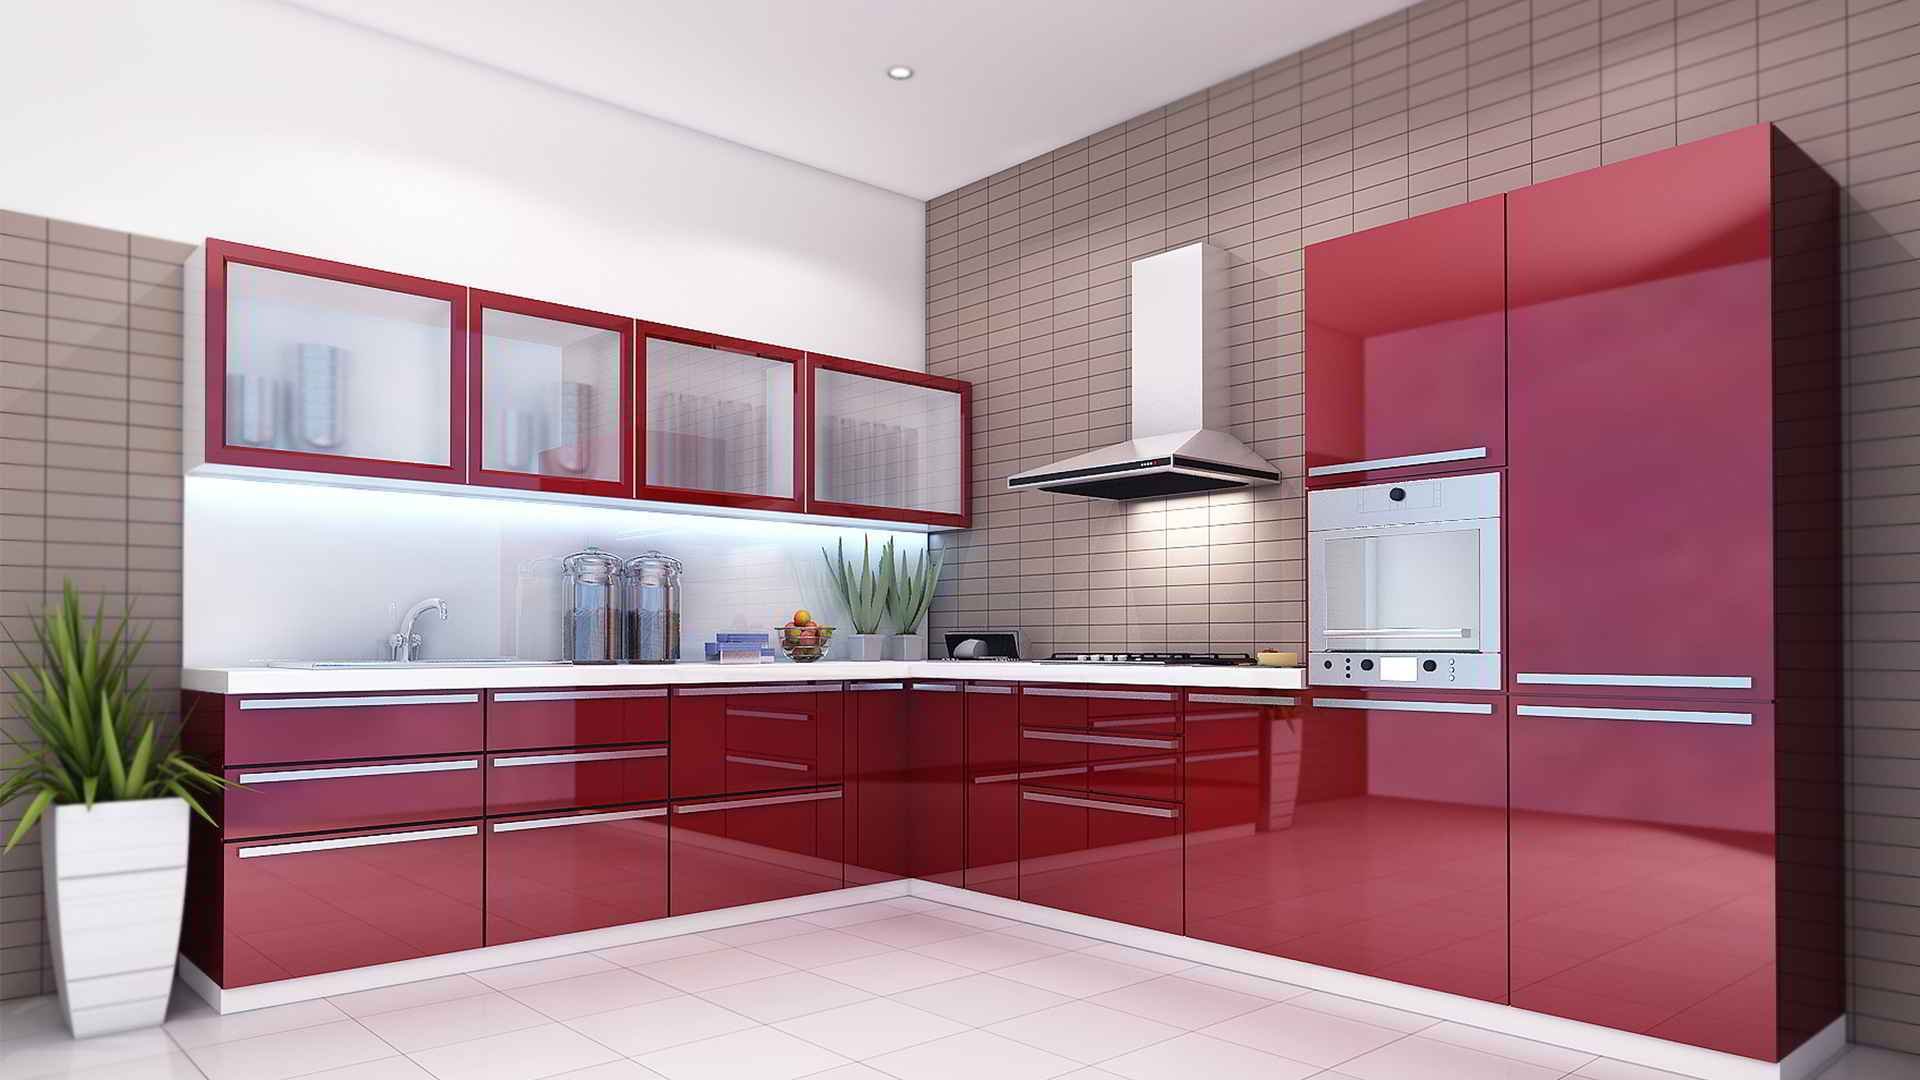 Residential Furniture In Pune Modular Kitchen Trolley Furniture In Pune